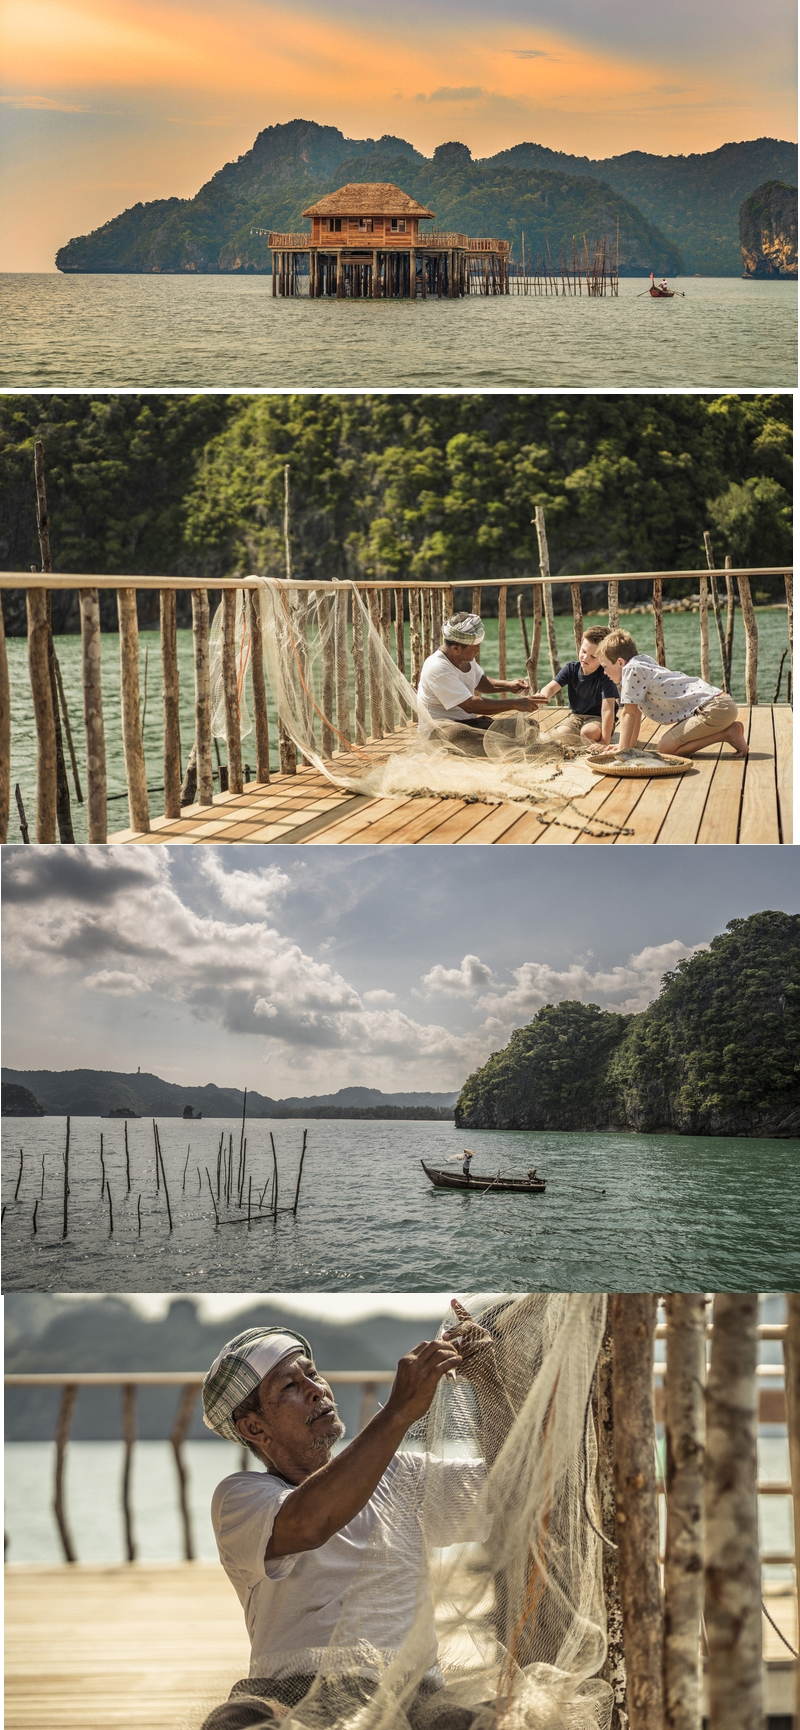 Four Seasons Resort Langkawi unveiled its traditional fish house-2019-